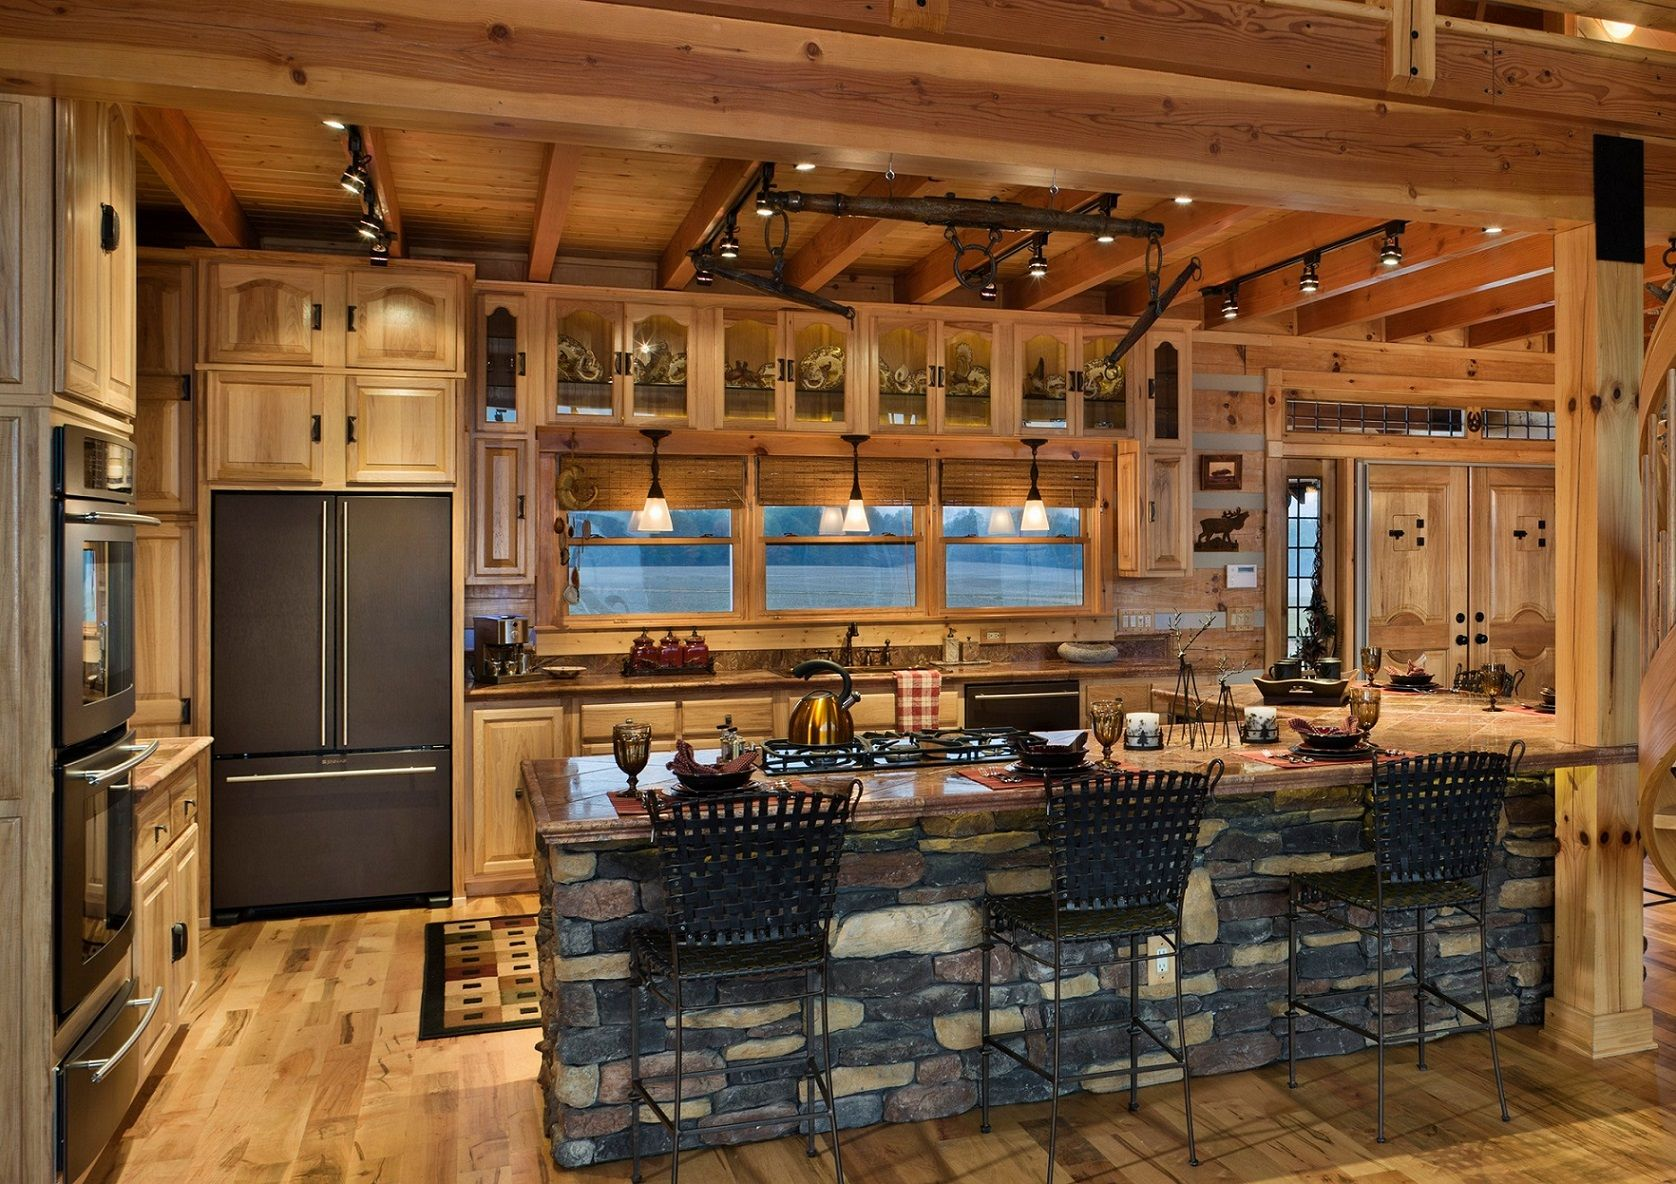 Rustic Home Bar Design Ideas | Home Bar Ideas For Any Available Spaces